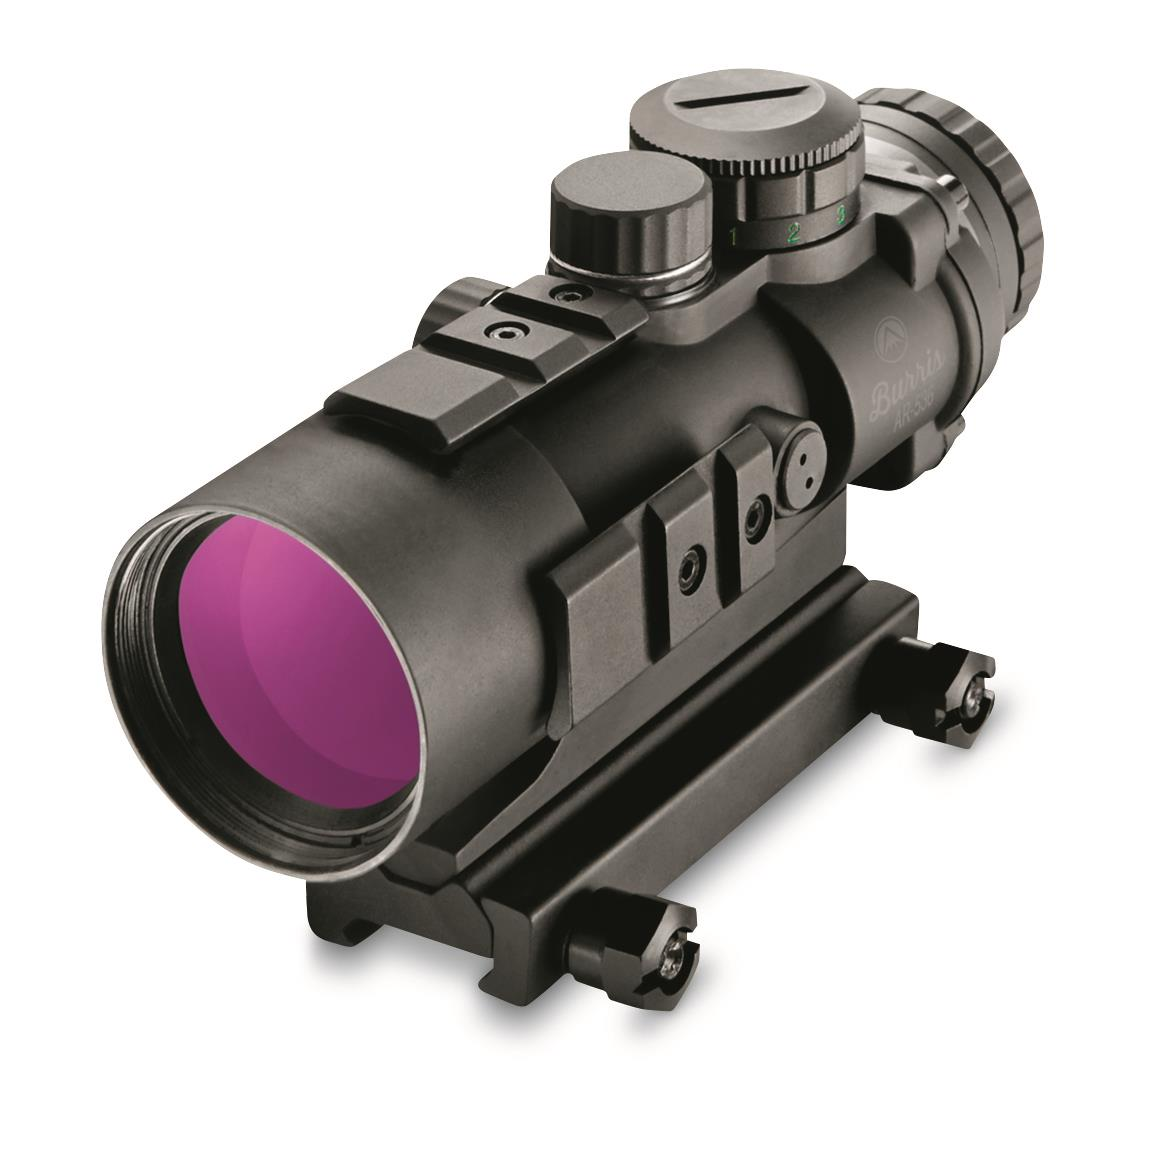 Burris AR-536, 5X, Ballistic CQ, Rifle Sight